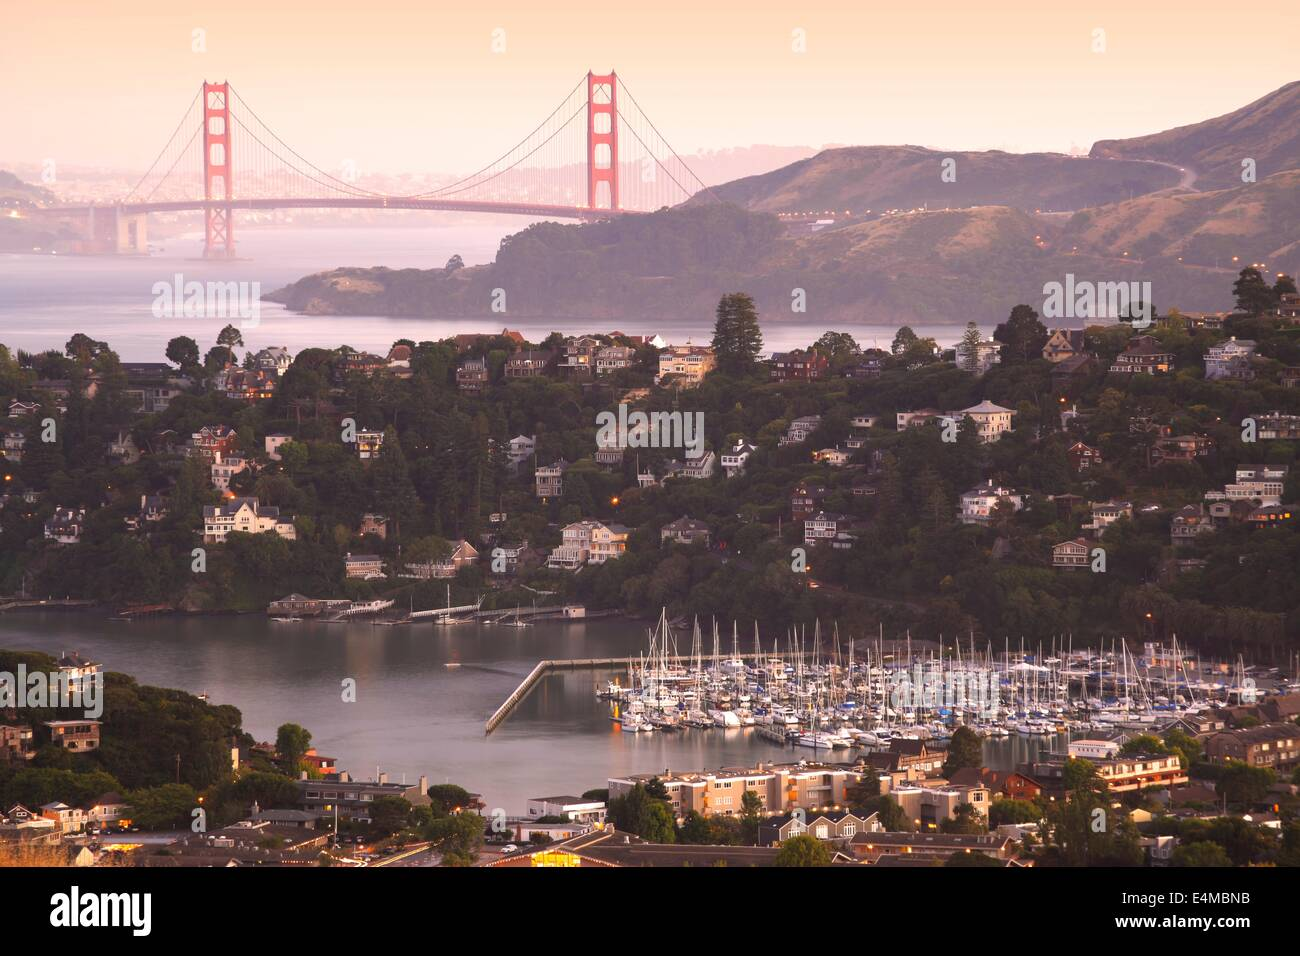 the-golden-gate-bridge-and-belvedere-fro